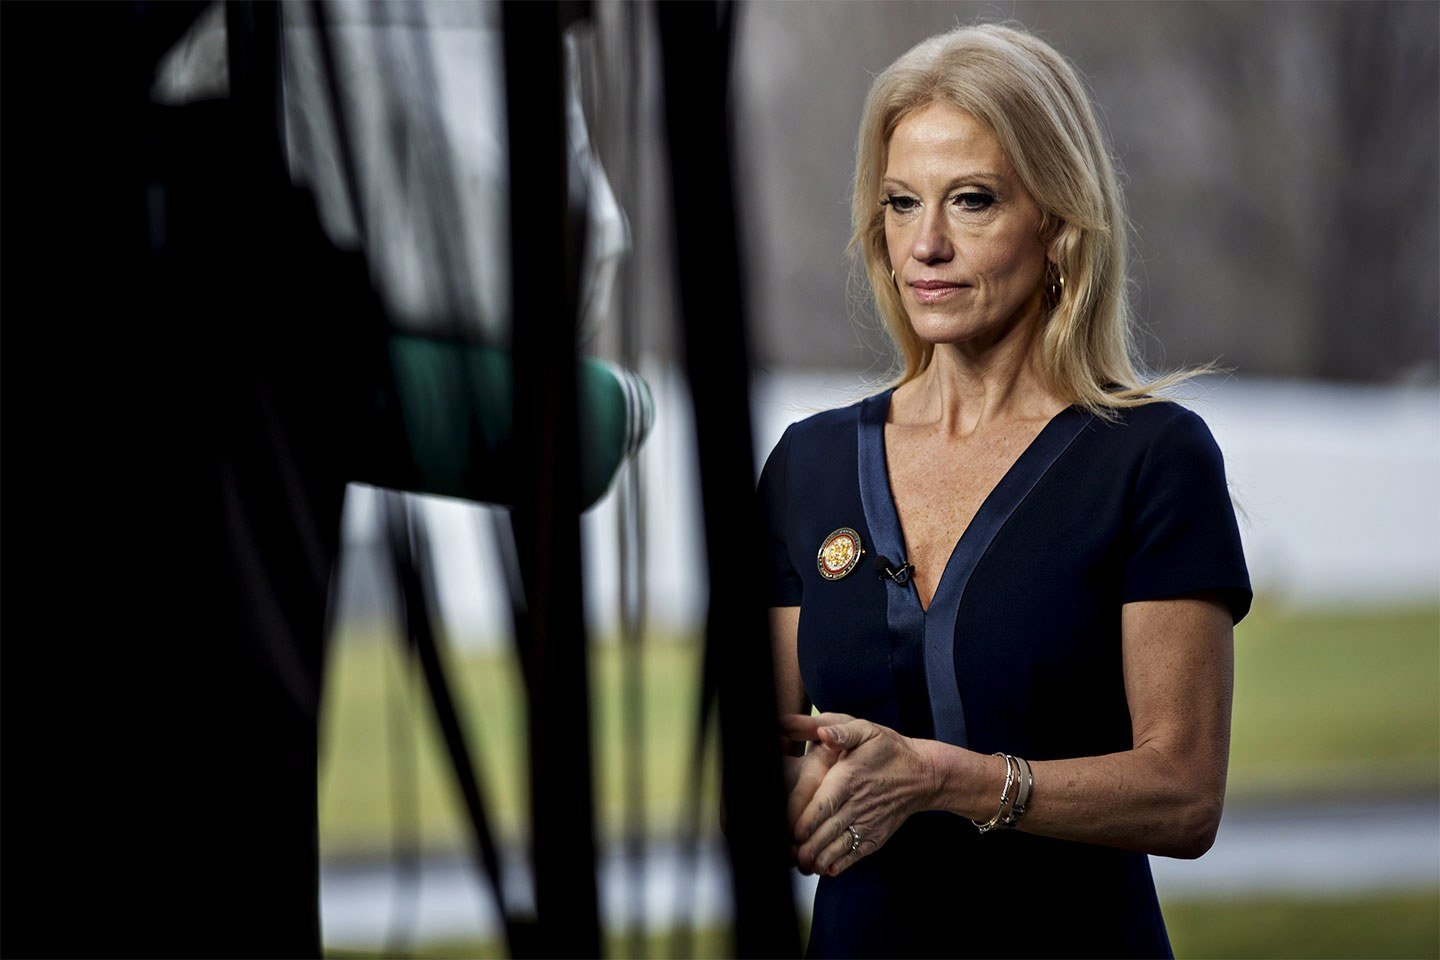 Kellyanne Conway Ridiculous to Say Trump Isnt Tough on Russia After Diplomat Expulsion VIDEO